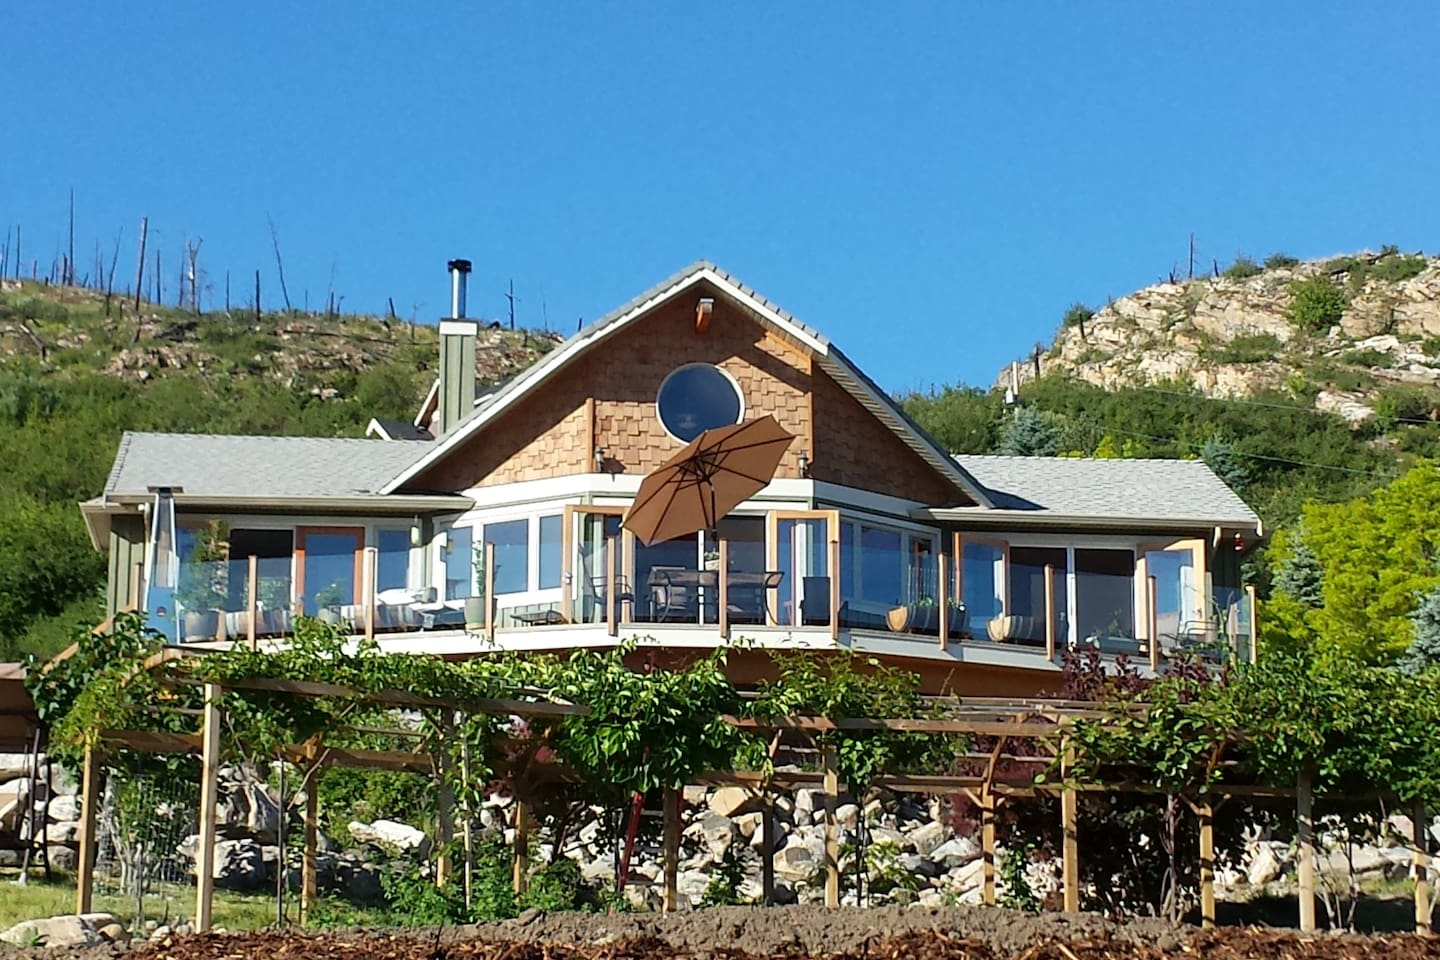 Our home is on the hillside overlooking the largest view possible of the lake Okanagan